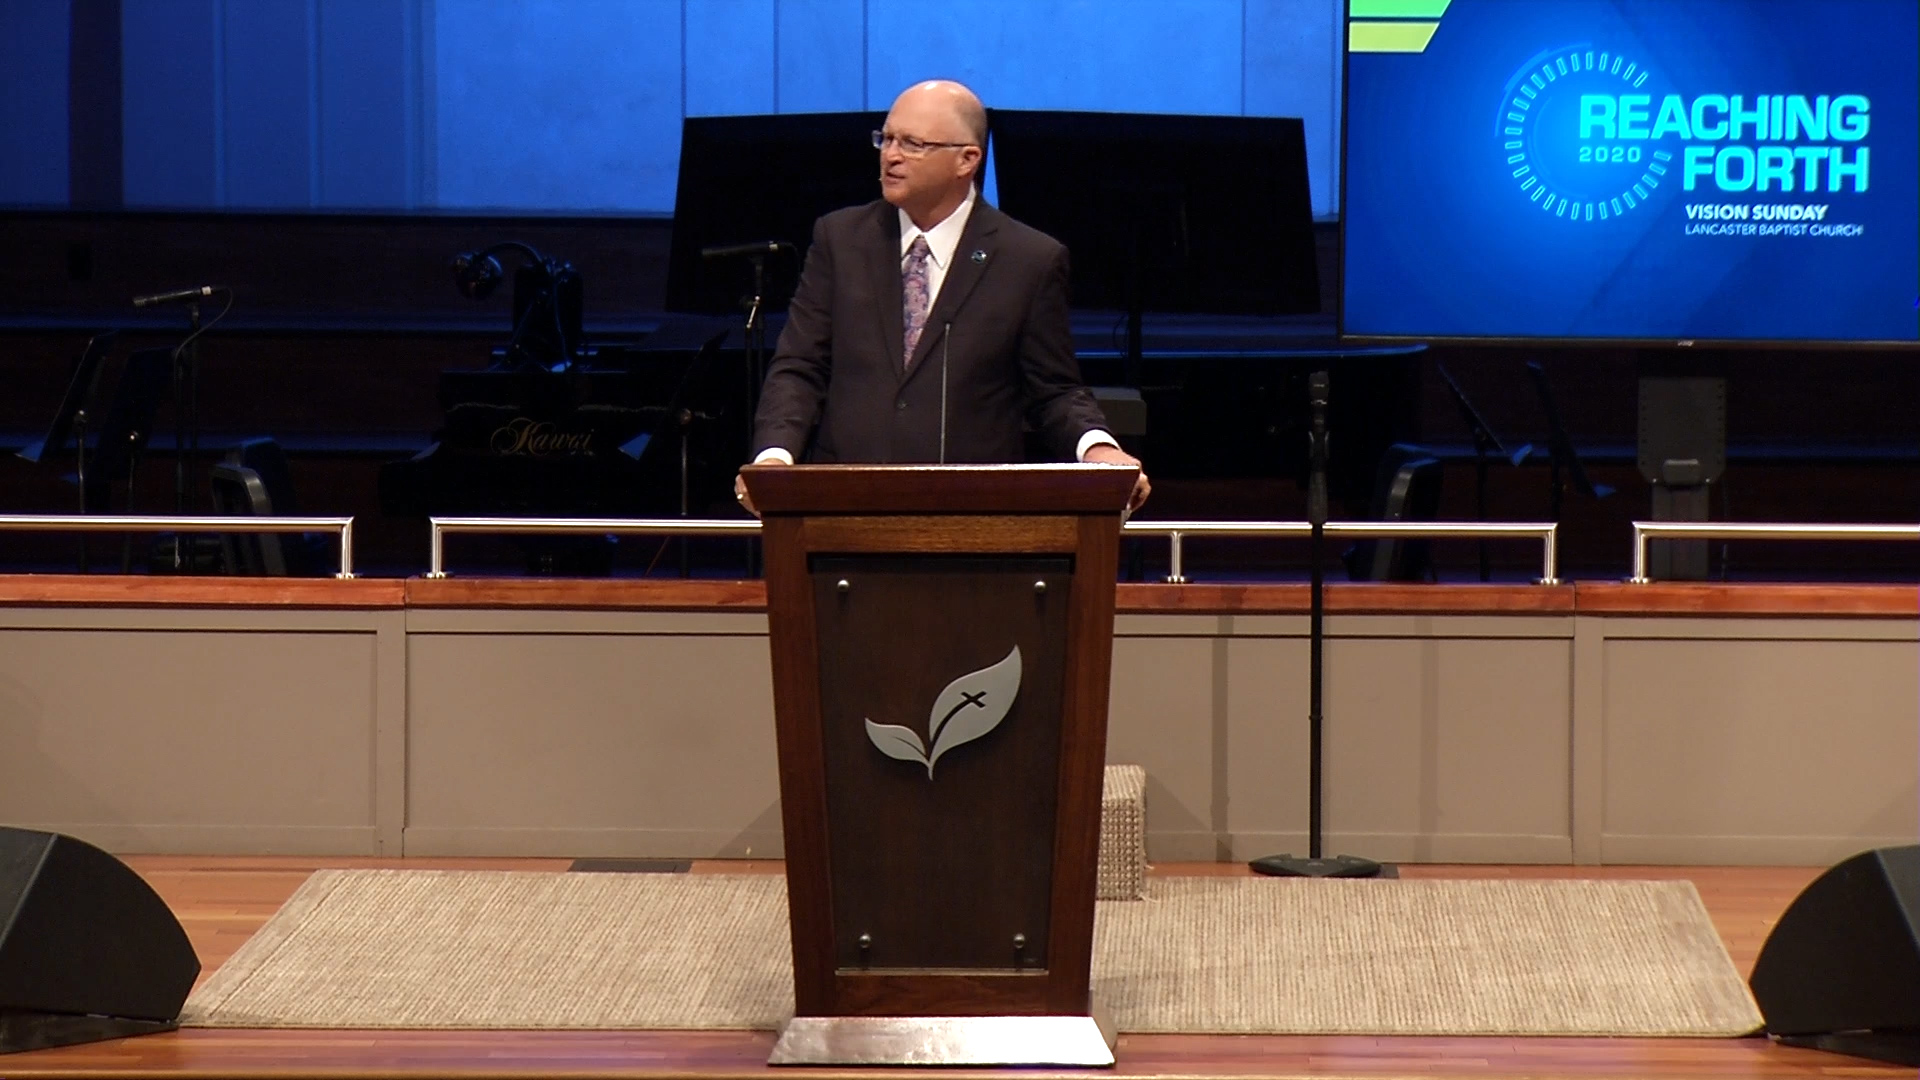 Pastor Paul Chappell: Reaching Forth Vision Sharing